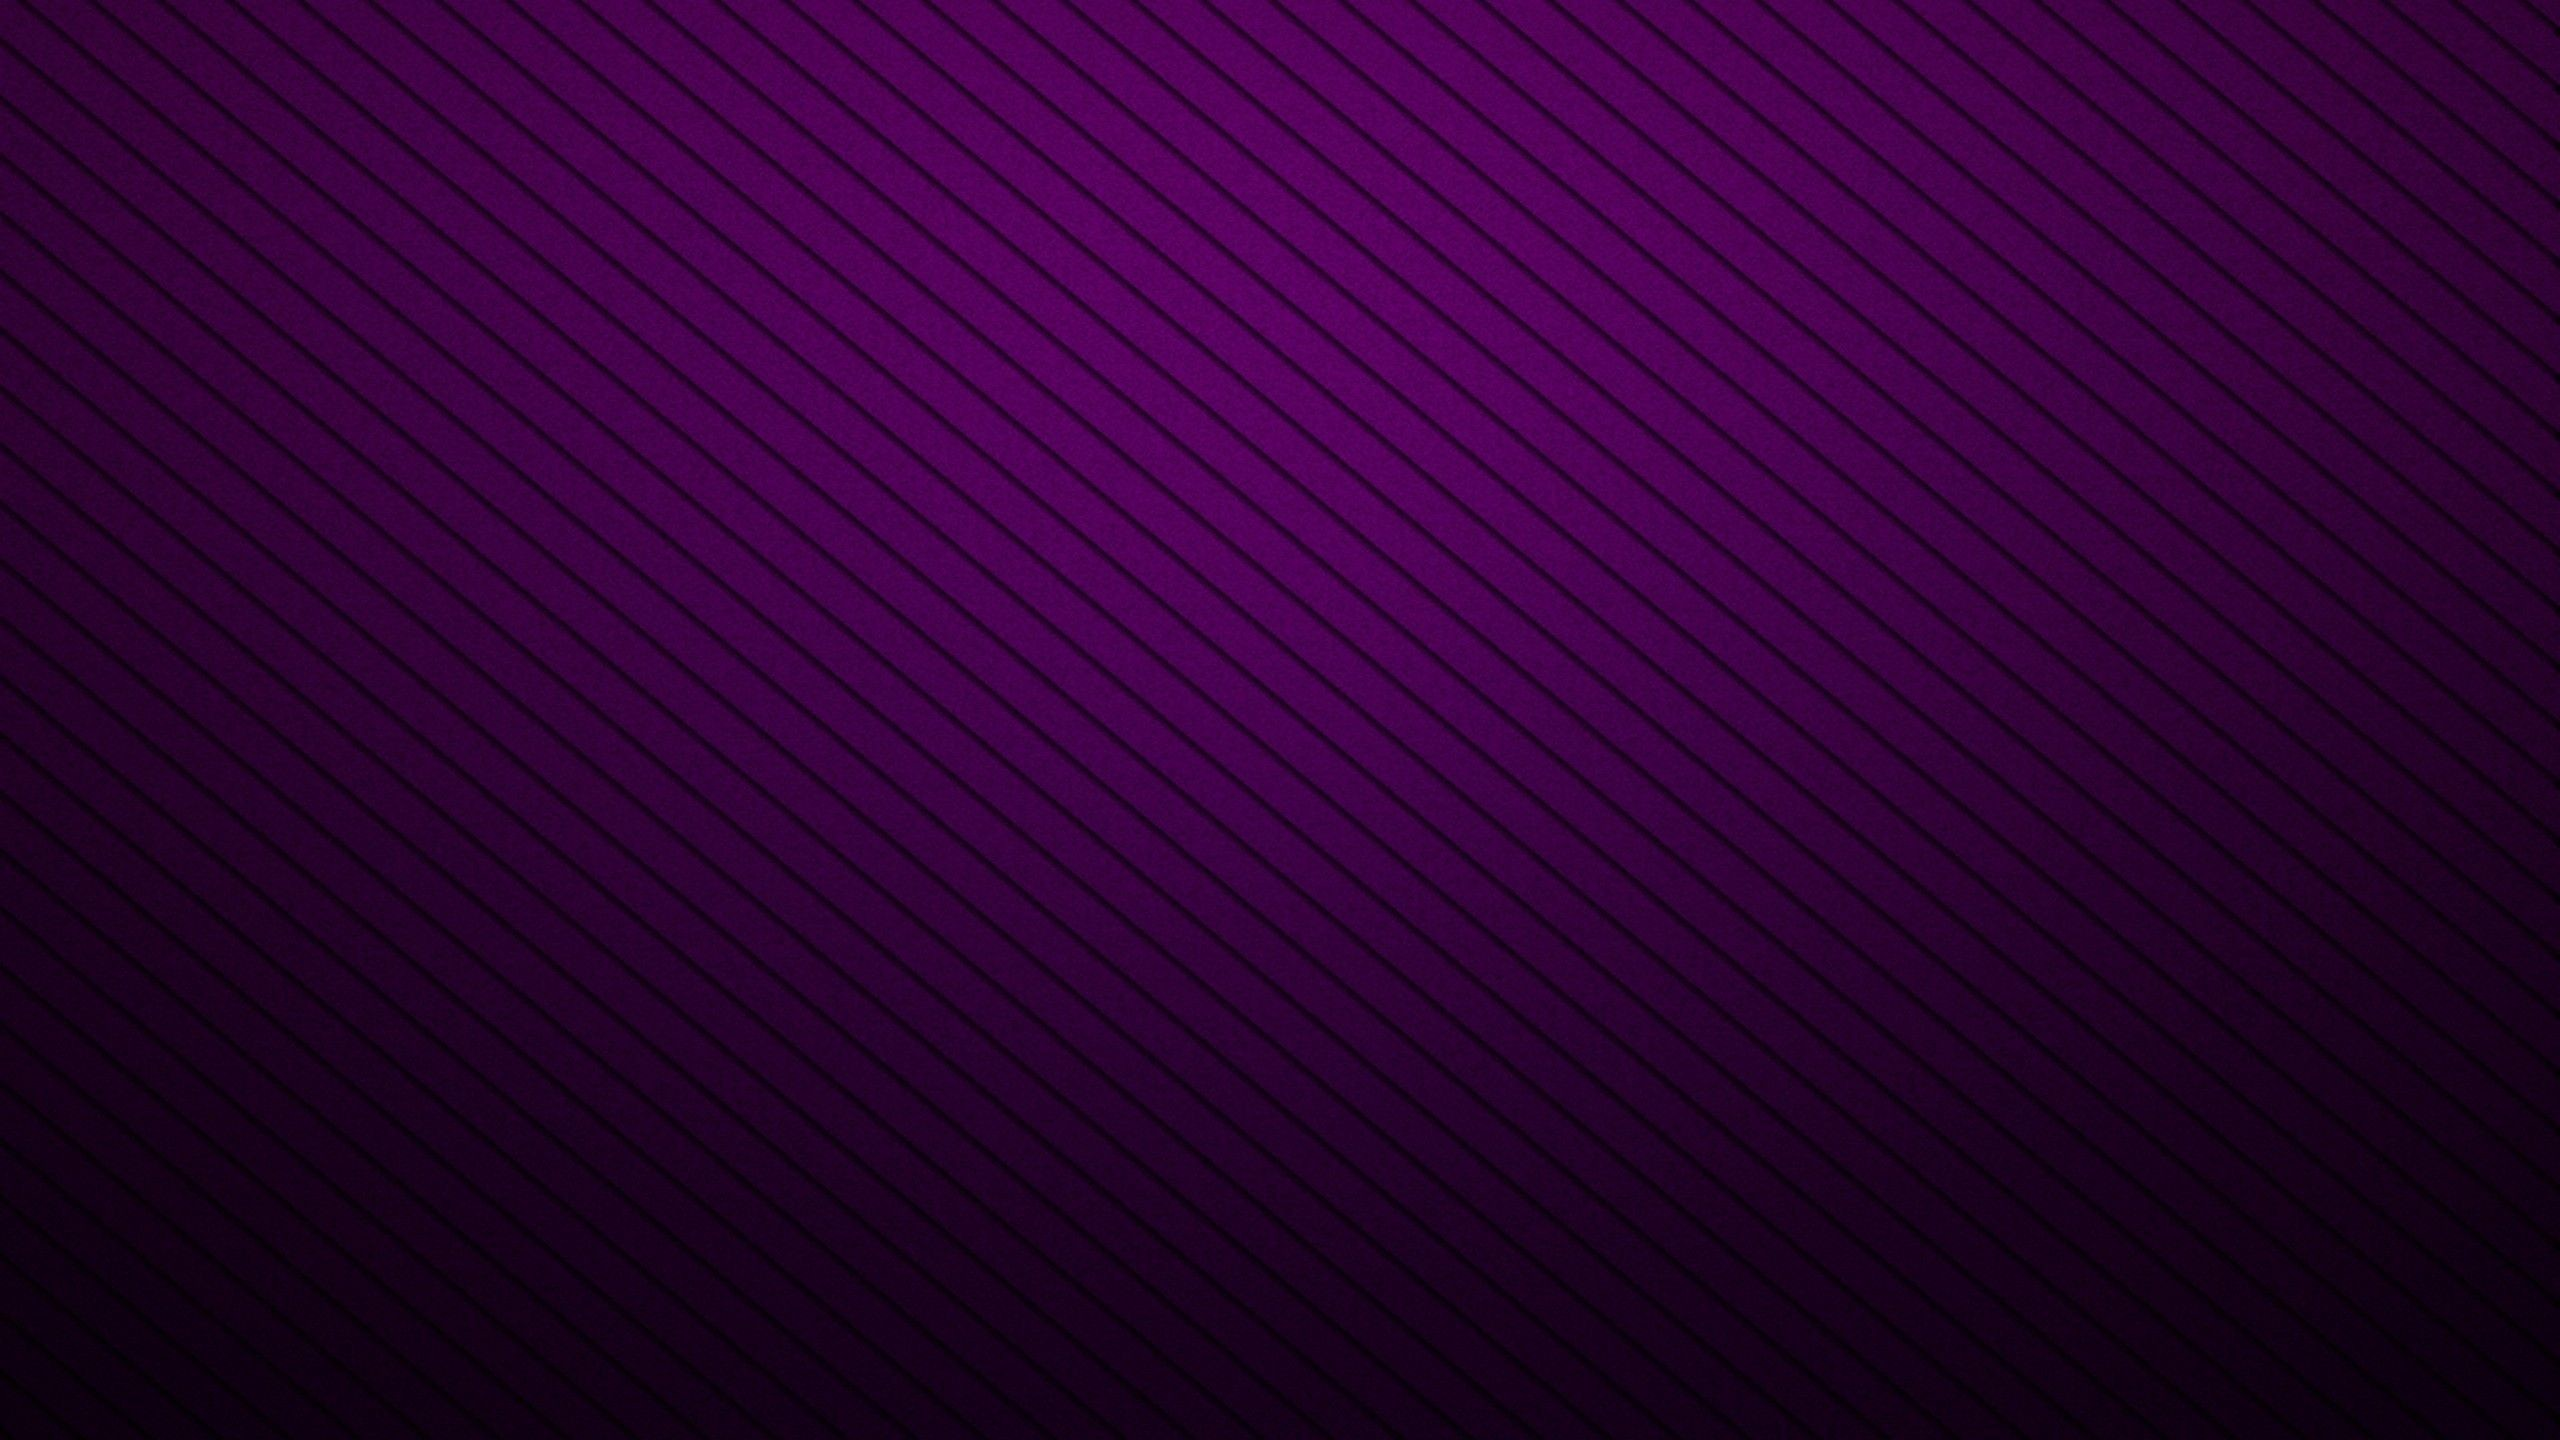 2560x1440 simple purple wallpapers high definition amazing cool desktop wallpapers  for windows apple mac tablet free 2560×1440 Wallpaper HD